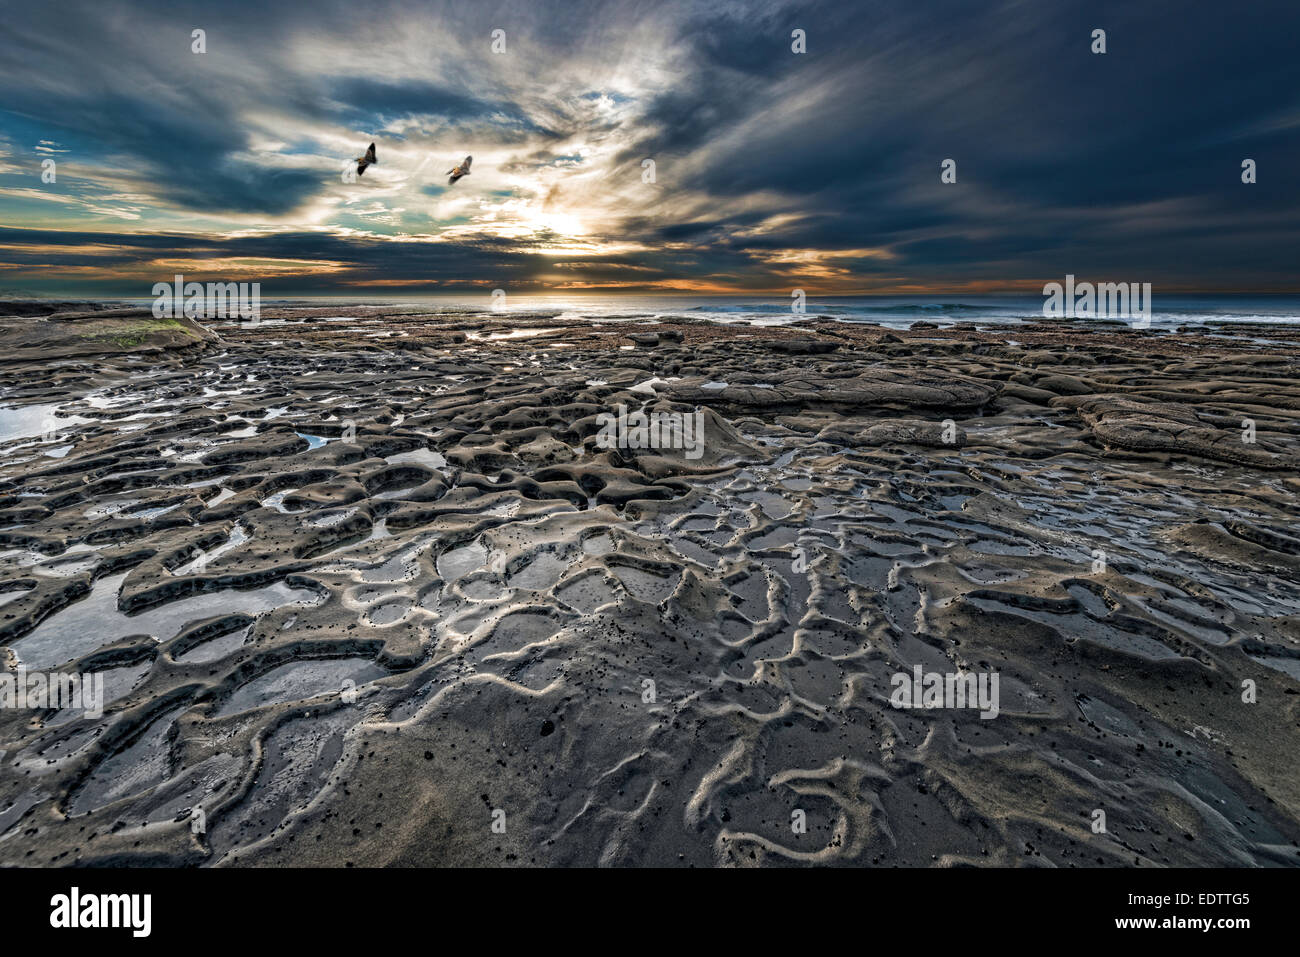 Tidal pools are revealed during low tide at Potholes at Hospitals reef in La Jolla, California, USA. - Stock Image